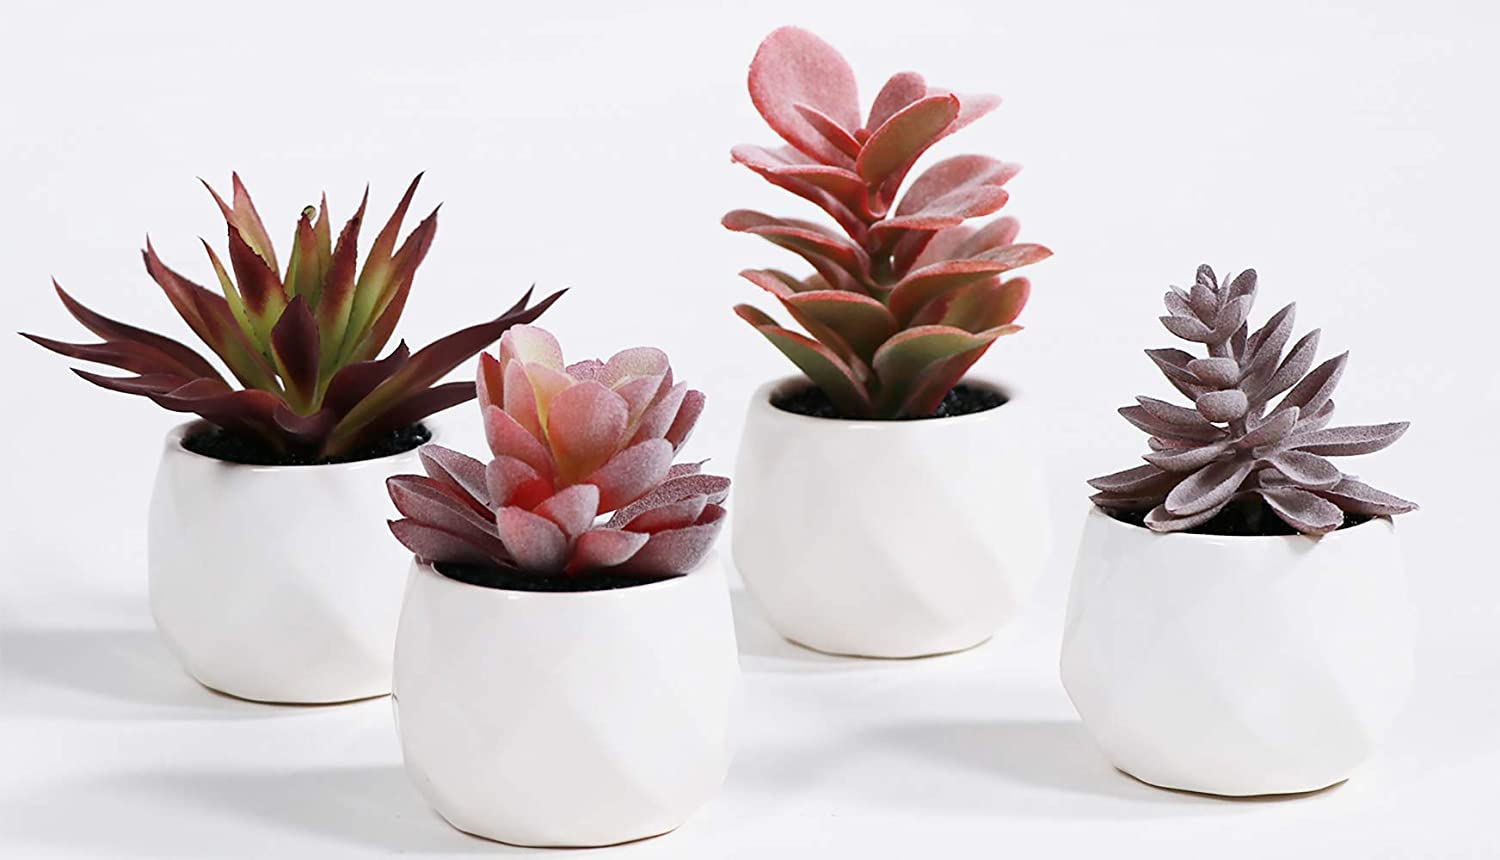 LITA Artificial Succulent Plants Fake Succulents Small Plants in White Ceramic Potted for Indoor Decor Office Room Desk Decoration4 Pots (Purple-2)